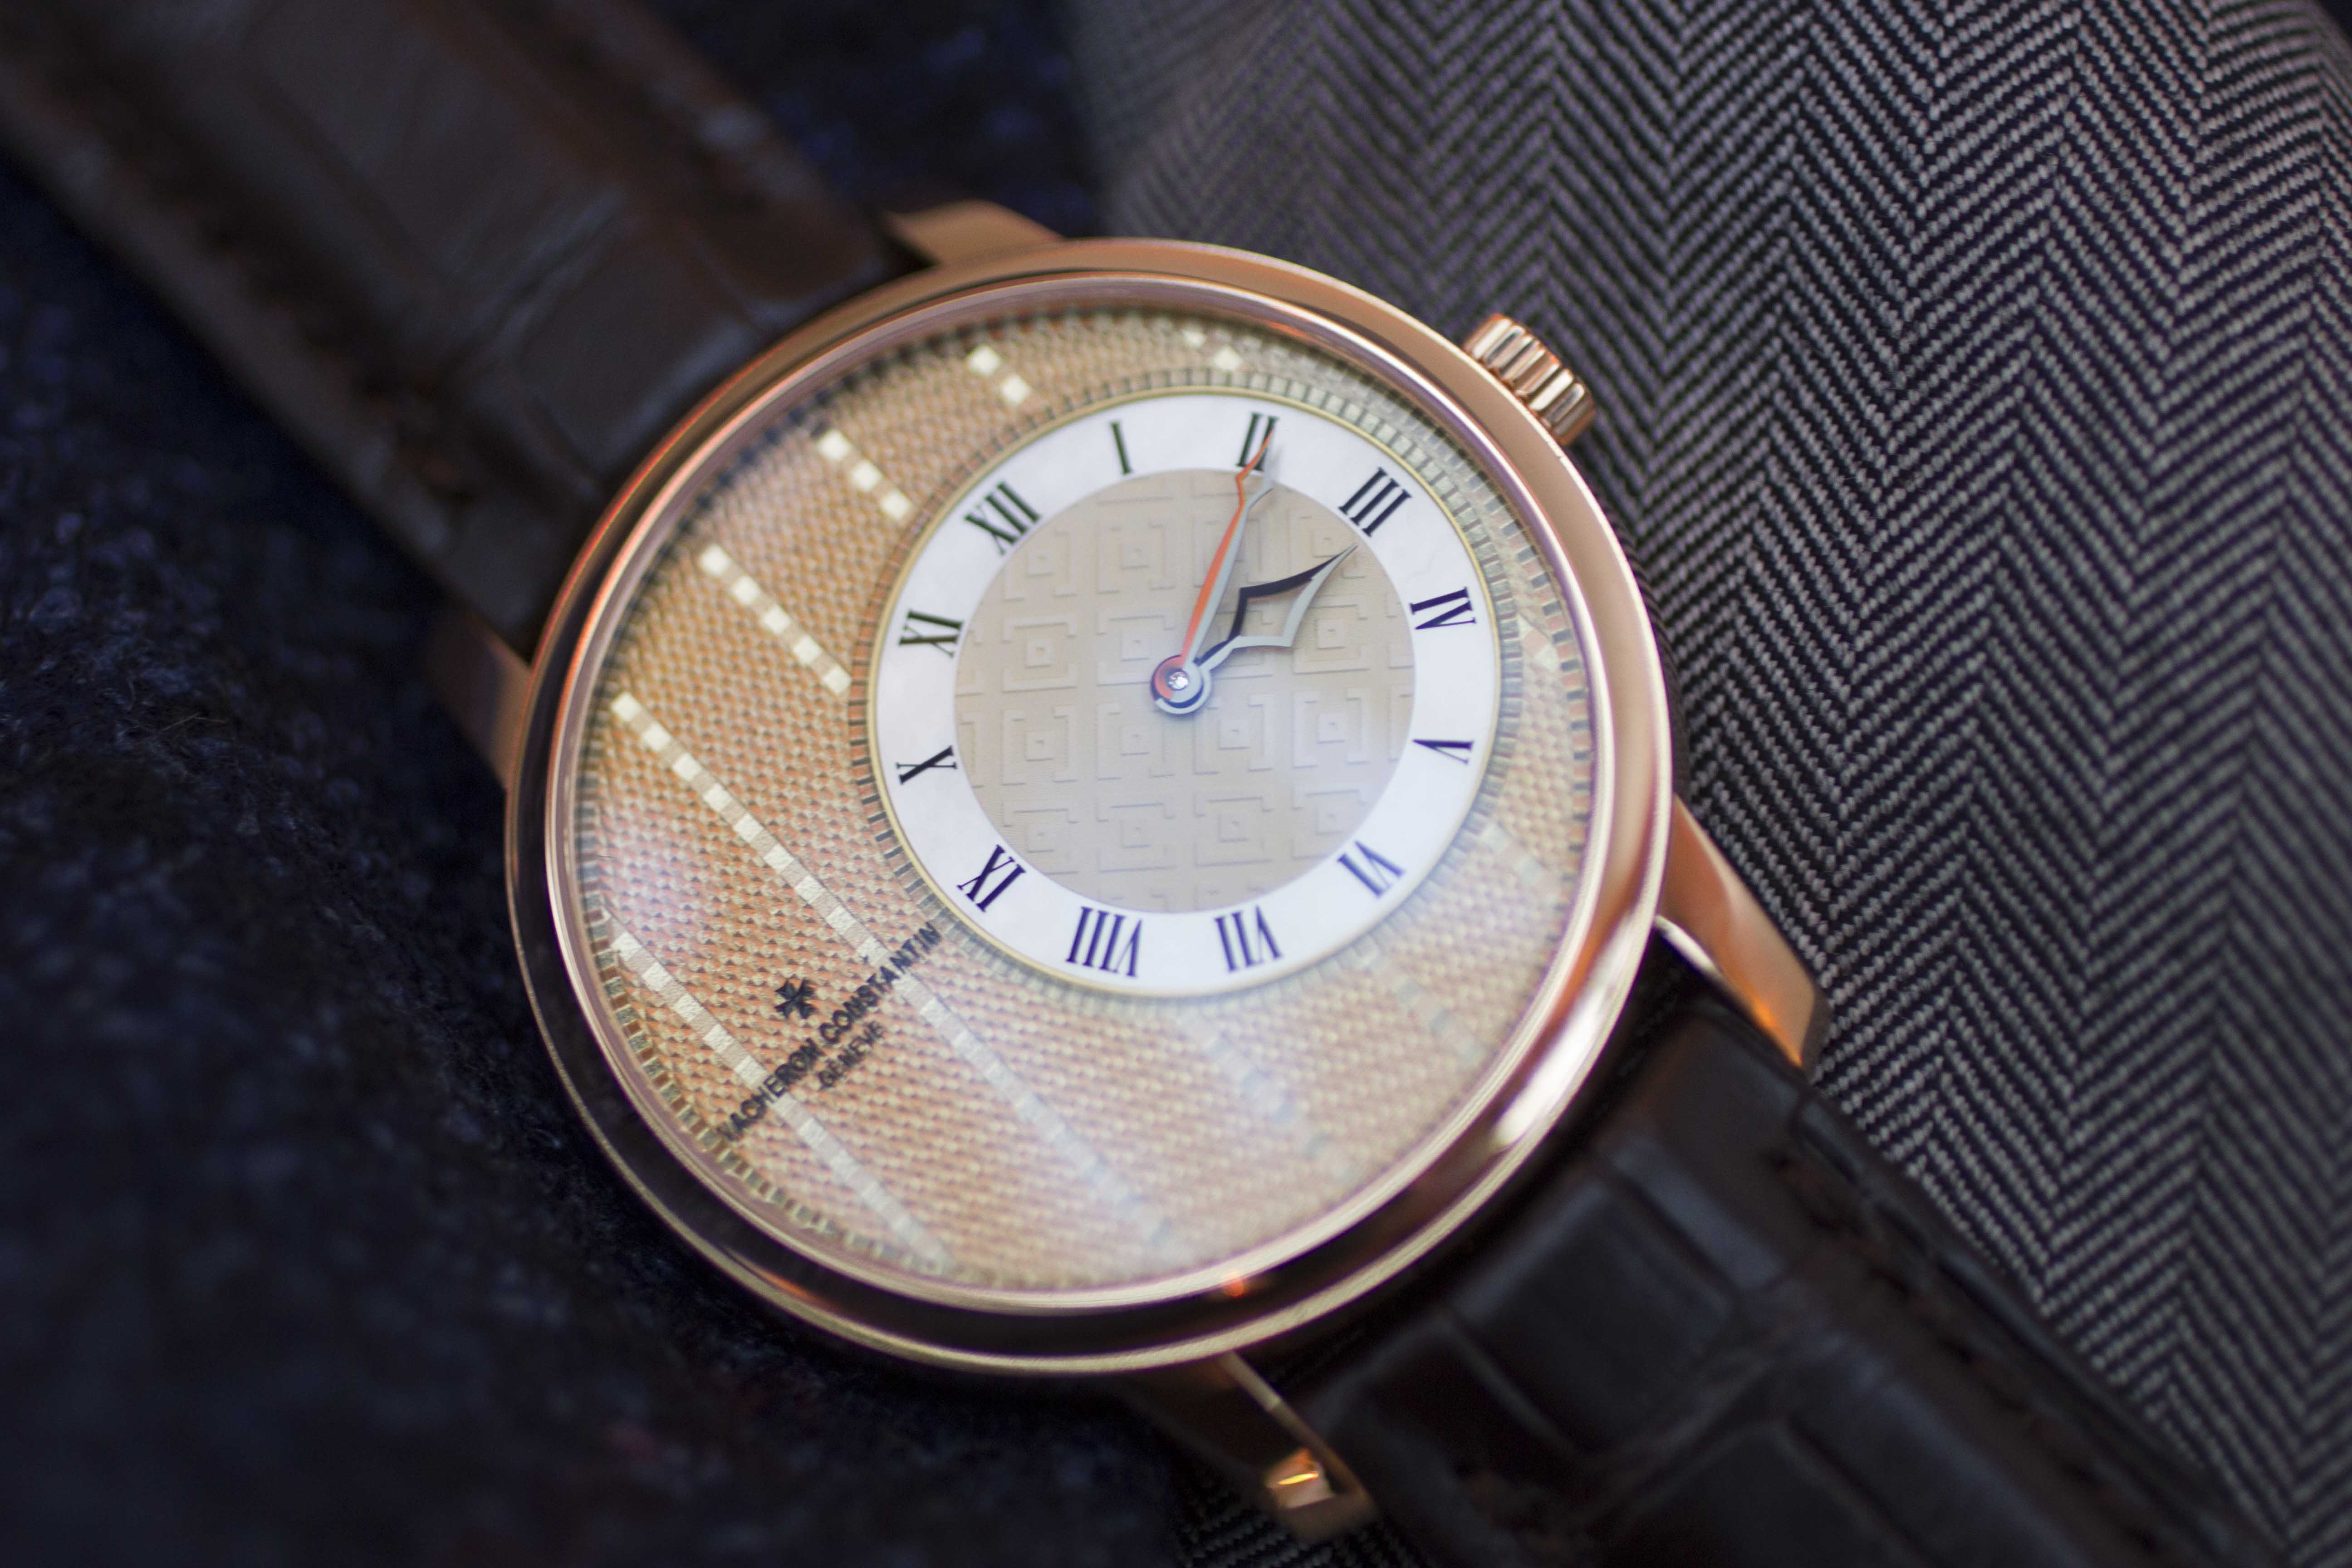 Vacheron Constantin Métiers d'Art Elégance Sartoriale pinstrip close up Introducing: The Vacheron Constantin Métiers d'Art Elégance Sartoriale, A Collection Dedicated To Matters Of Style (Live Pics, Pricing Information) Introducing: The Vacheron Constantin Métiers d'Art Elégance Sartoriale, A Collection Dedicated To Matters Of Style (Live Pics, Pricing Information) 6